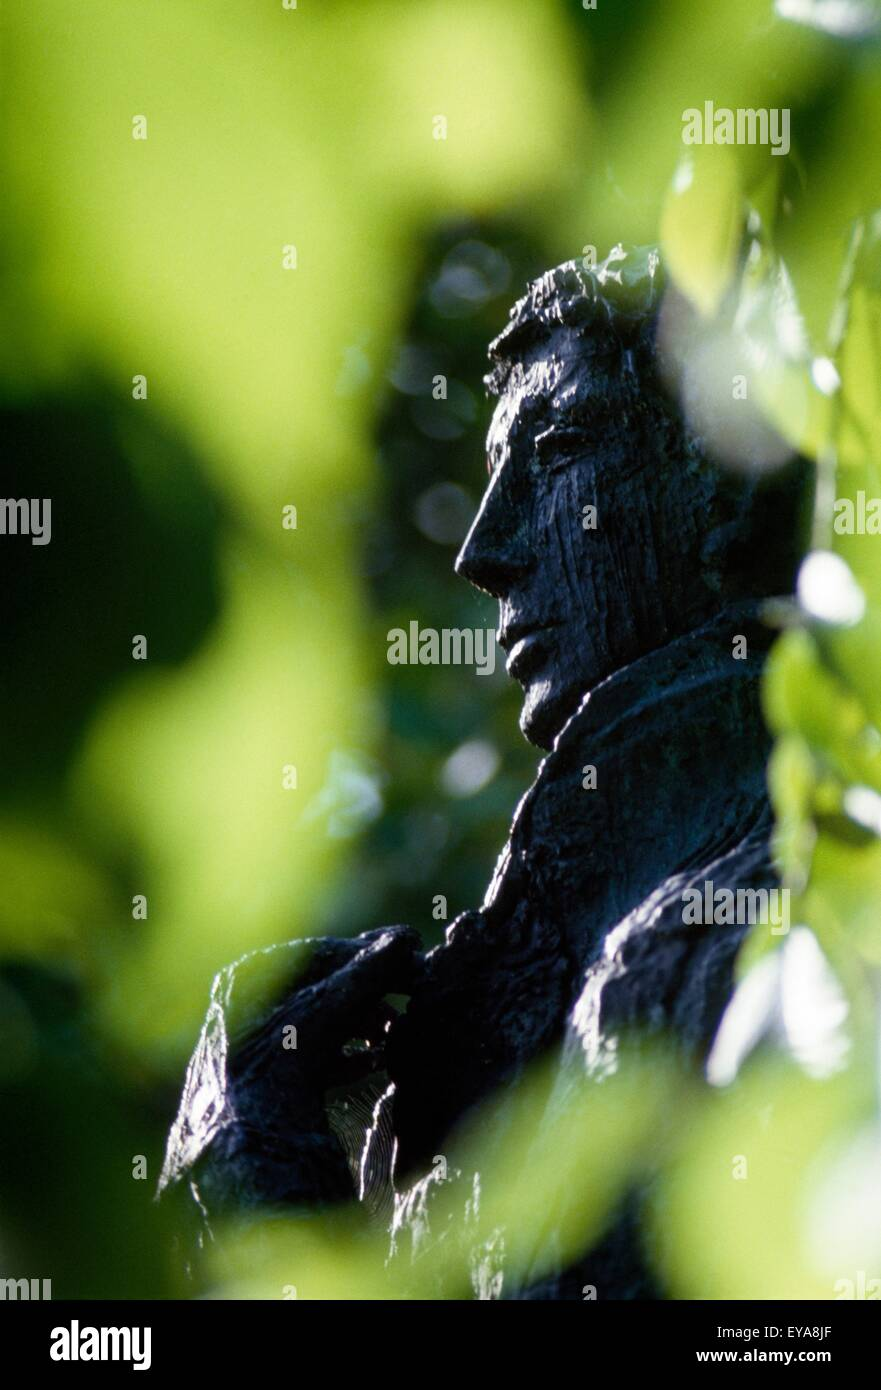 Statue Of Wolfe Tone, St. Stephen's Green, Dublin City, County Dublin, Ireland - Stock Image